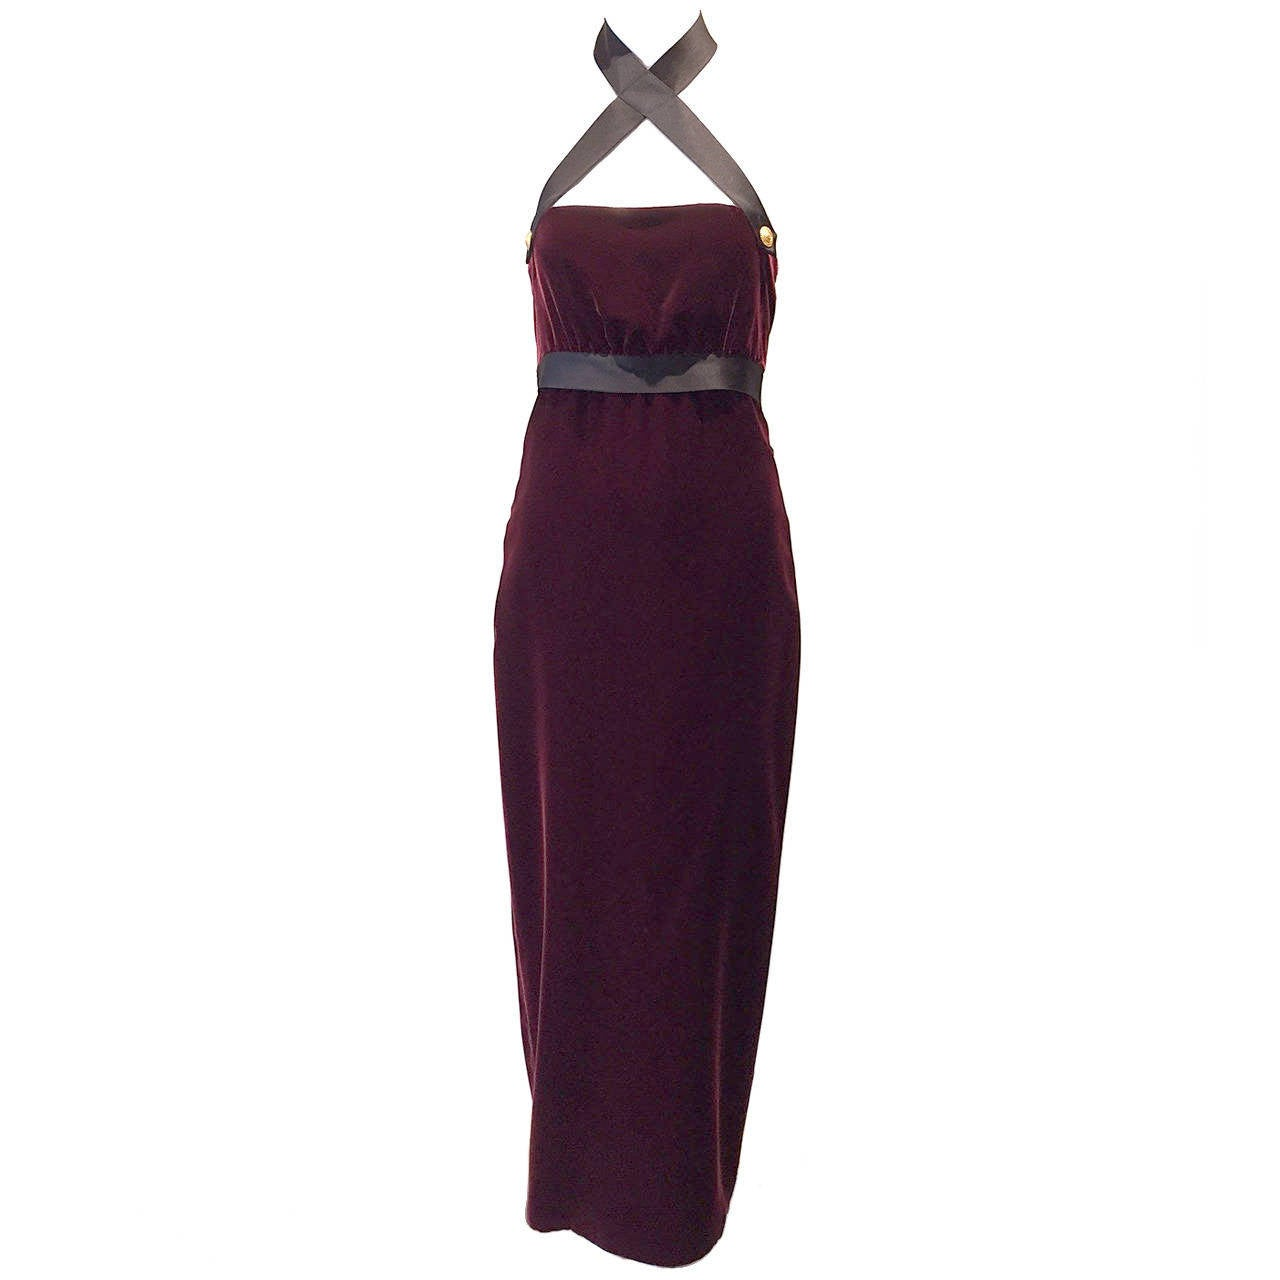 1990s Chanel burgundy velvet halter gown For Sale